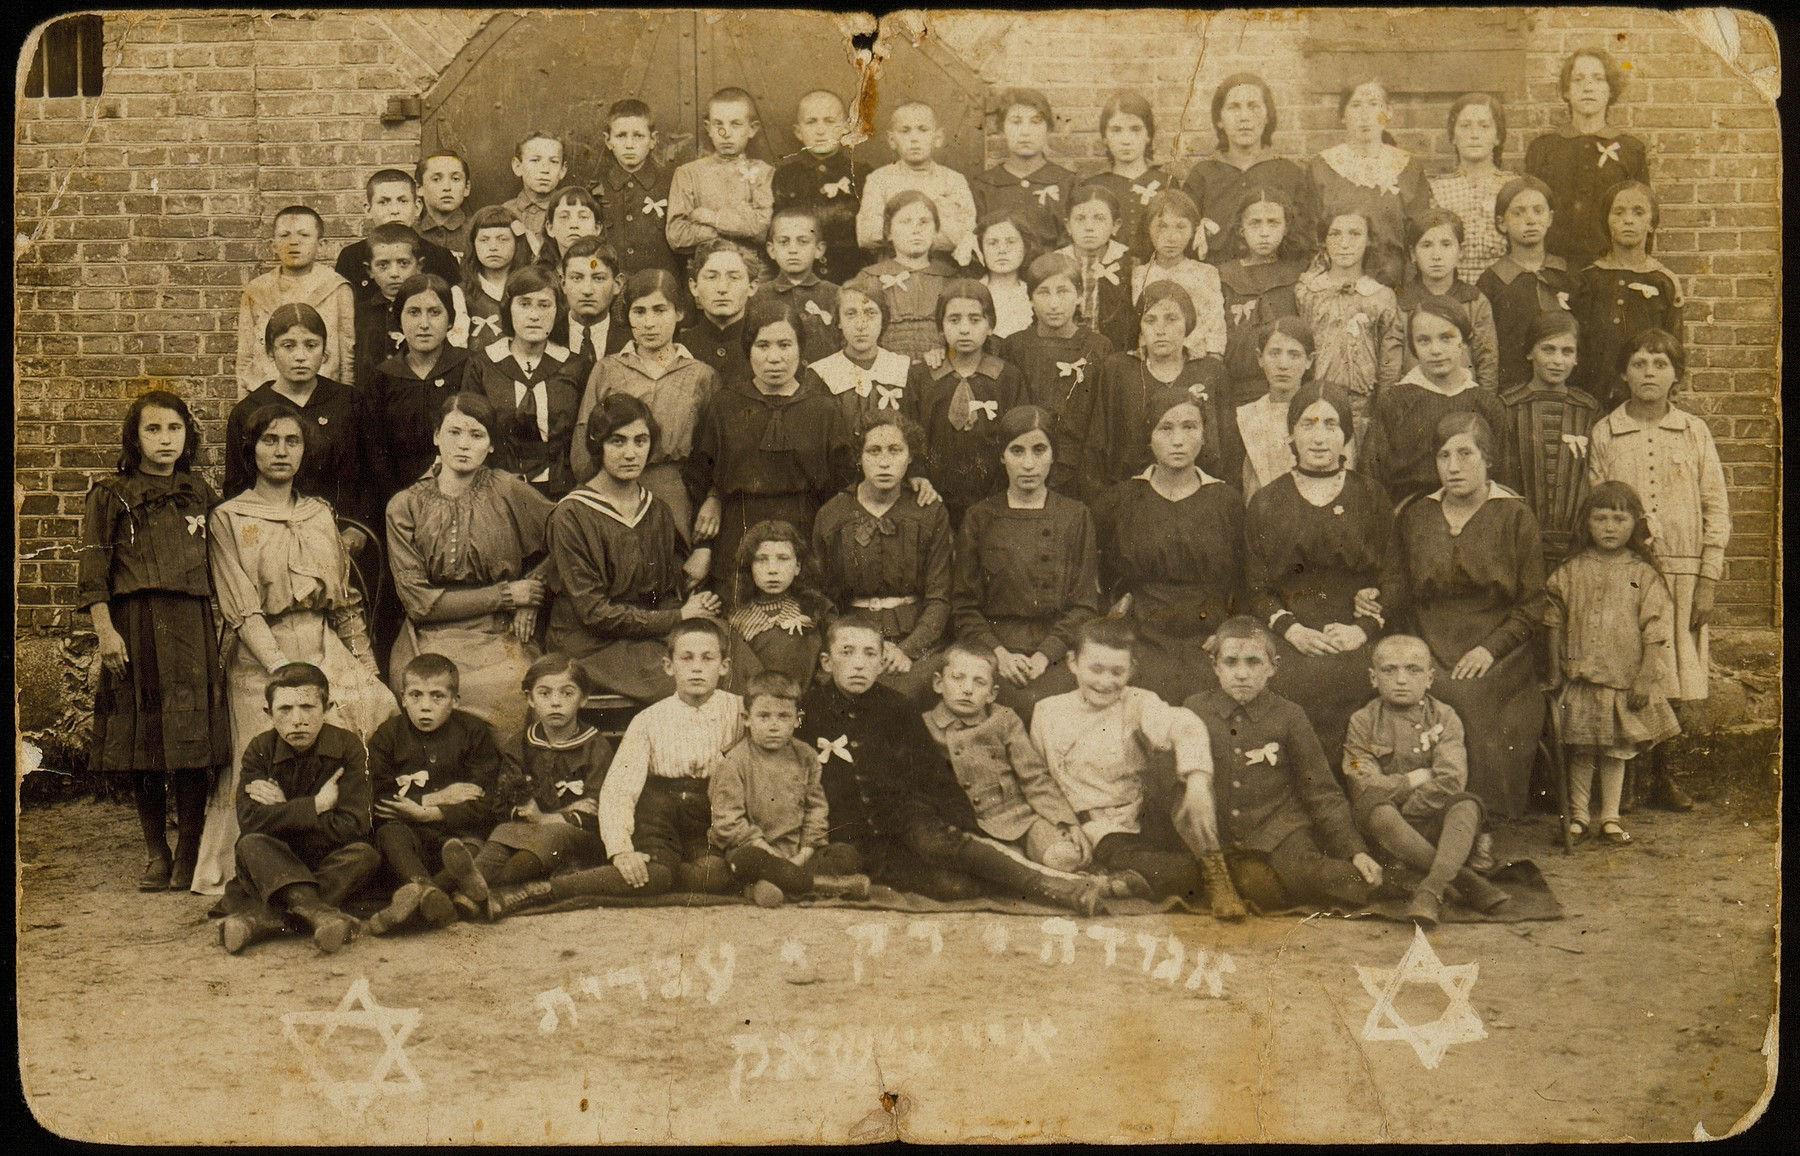 Members of the Rak Ivrit (Only Hebrew) society founded by Leah Wilansky.   The white bow on their chests indicates that Hebrew, not Yiddish, is the member's daily language.  In the third row, fifth from left, is Sarah Rubinstein, the Hebrew instructor, who was the first female teacher to teach boys as well as girls.    Shlomo Kiuchefski is sitting on the ground, fifth from right.  The little girl in the second row, far right, is Esther Katz.  Fourth row, standing to the right of Sarah Rubinstein, is Shaul Kaleko and his brother Simha; the boy directly behind Sarah is Moshe Sonenson.  Behind him in the last last row is his brother Shalom, wearing a black outfit.  A significant number of the people in the photo immigrated to Palestine or other various countries.